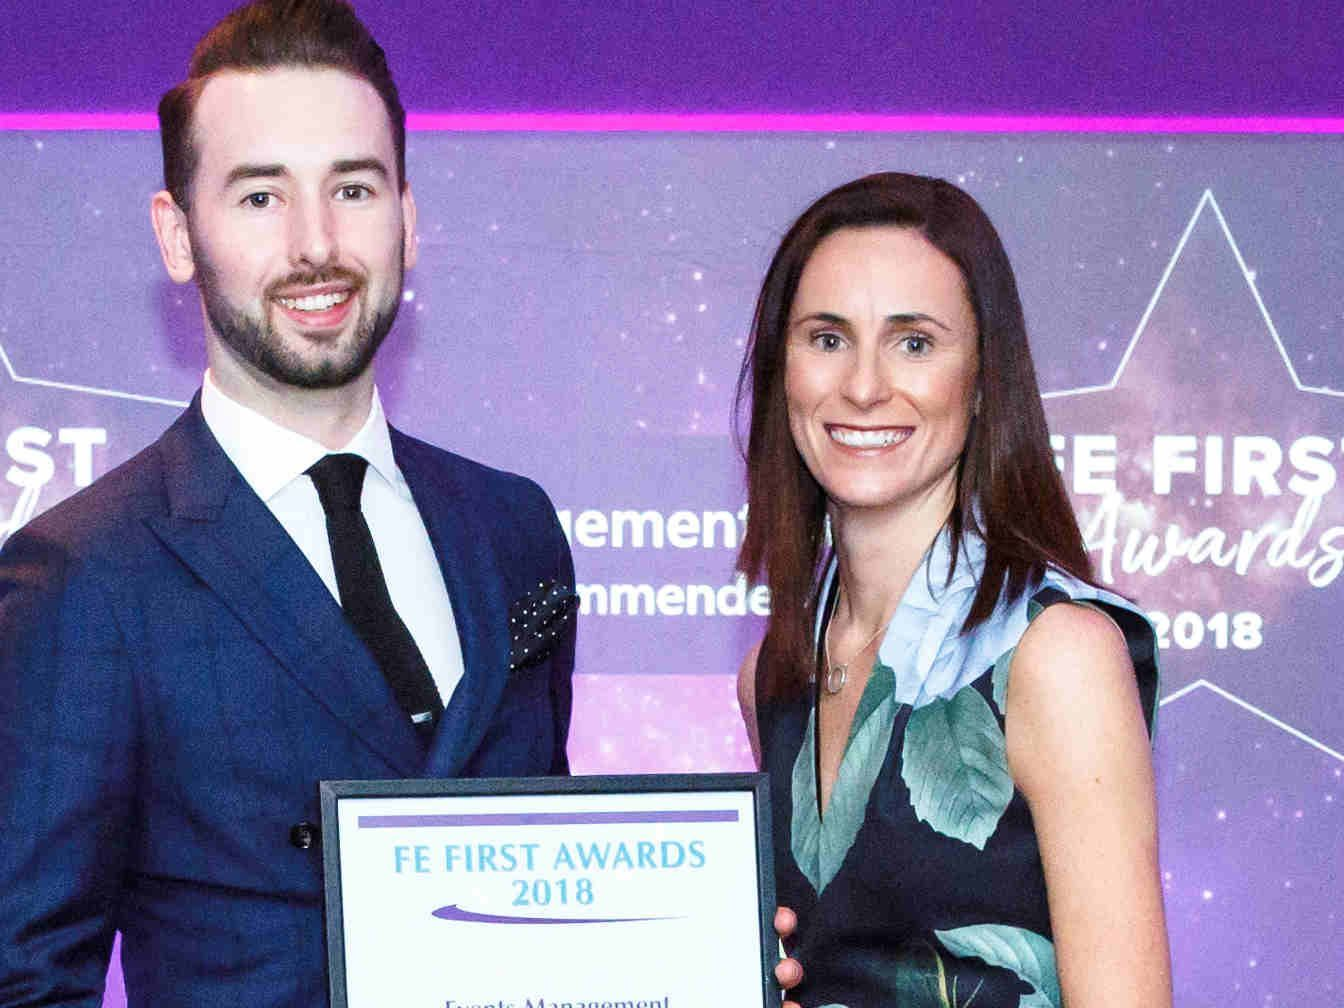 FE First Awards 2018, College Marketing Network, Telford College